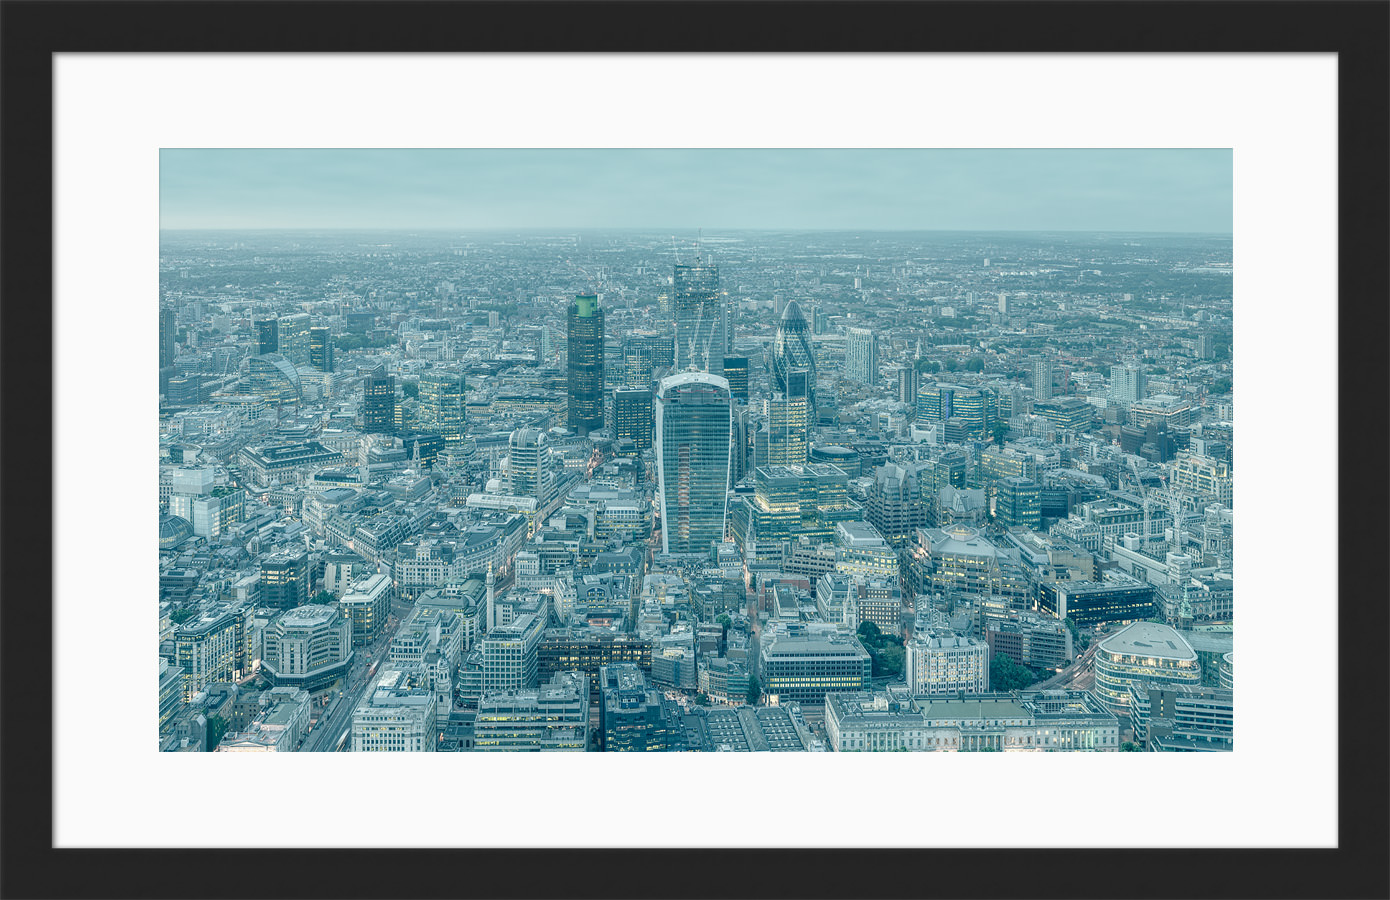 Infinitely London - Framed London Fine Art Photograph